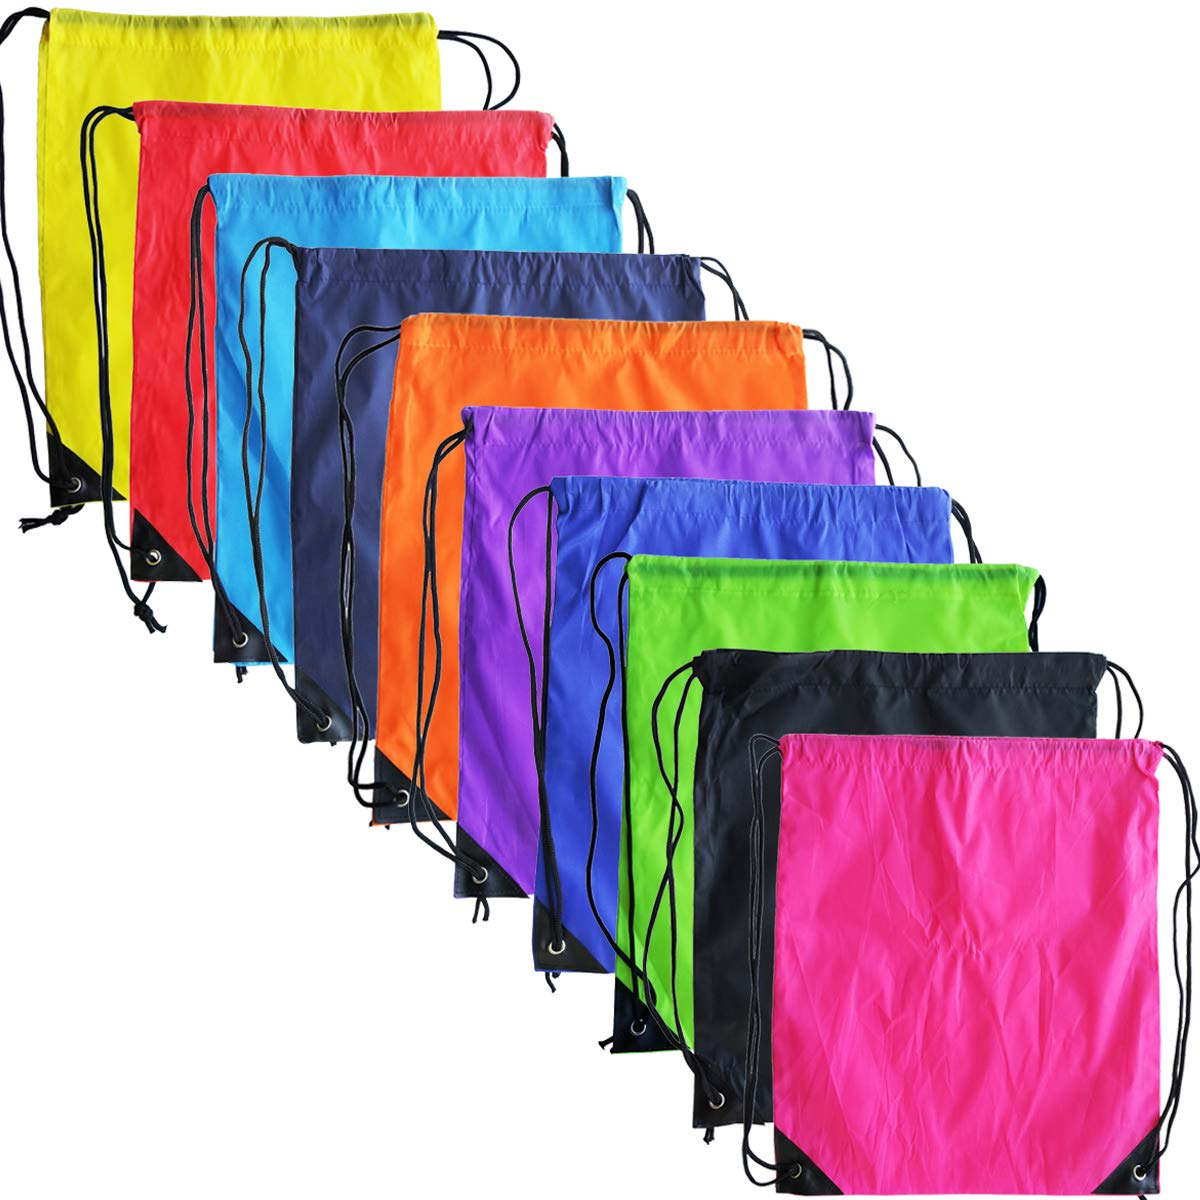 10 Colors Drawstring Backpack Bags Sack Pack Cinch Tote Kids Sport Storage Polyester Bag for Gym Traveling